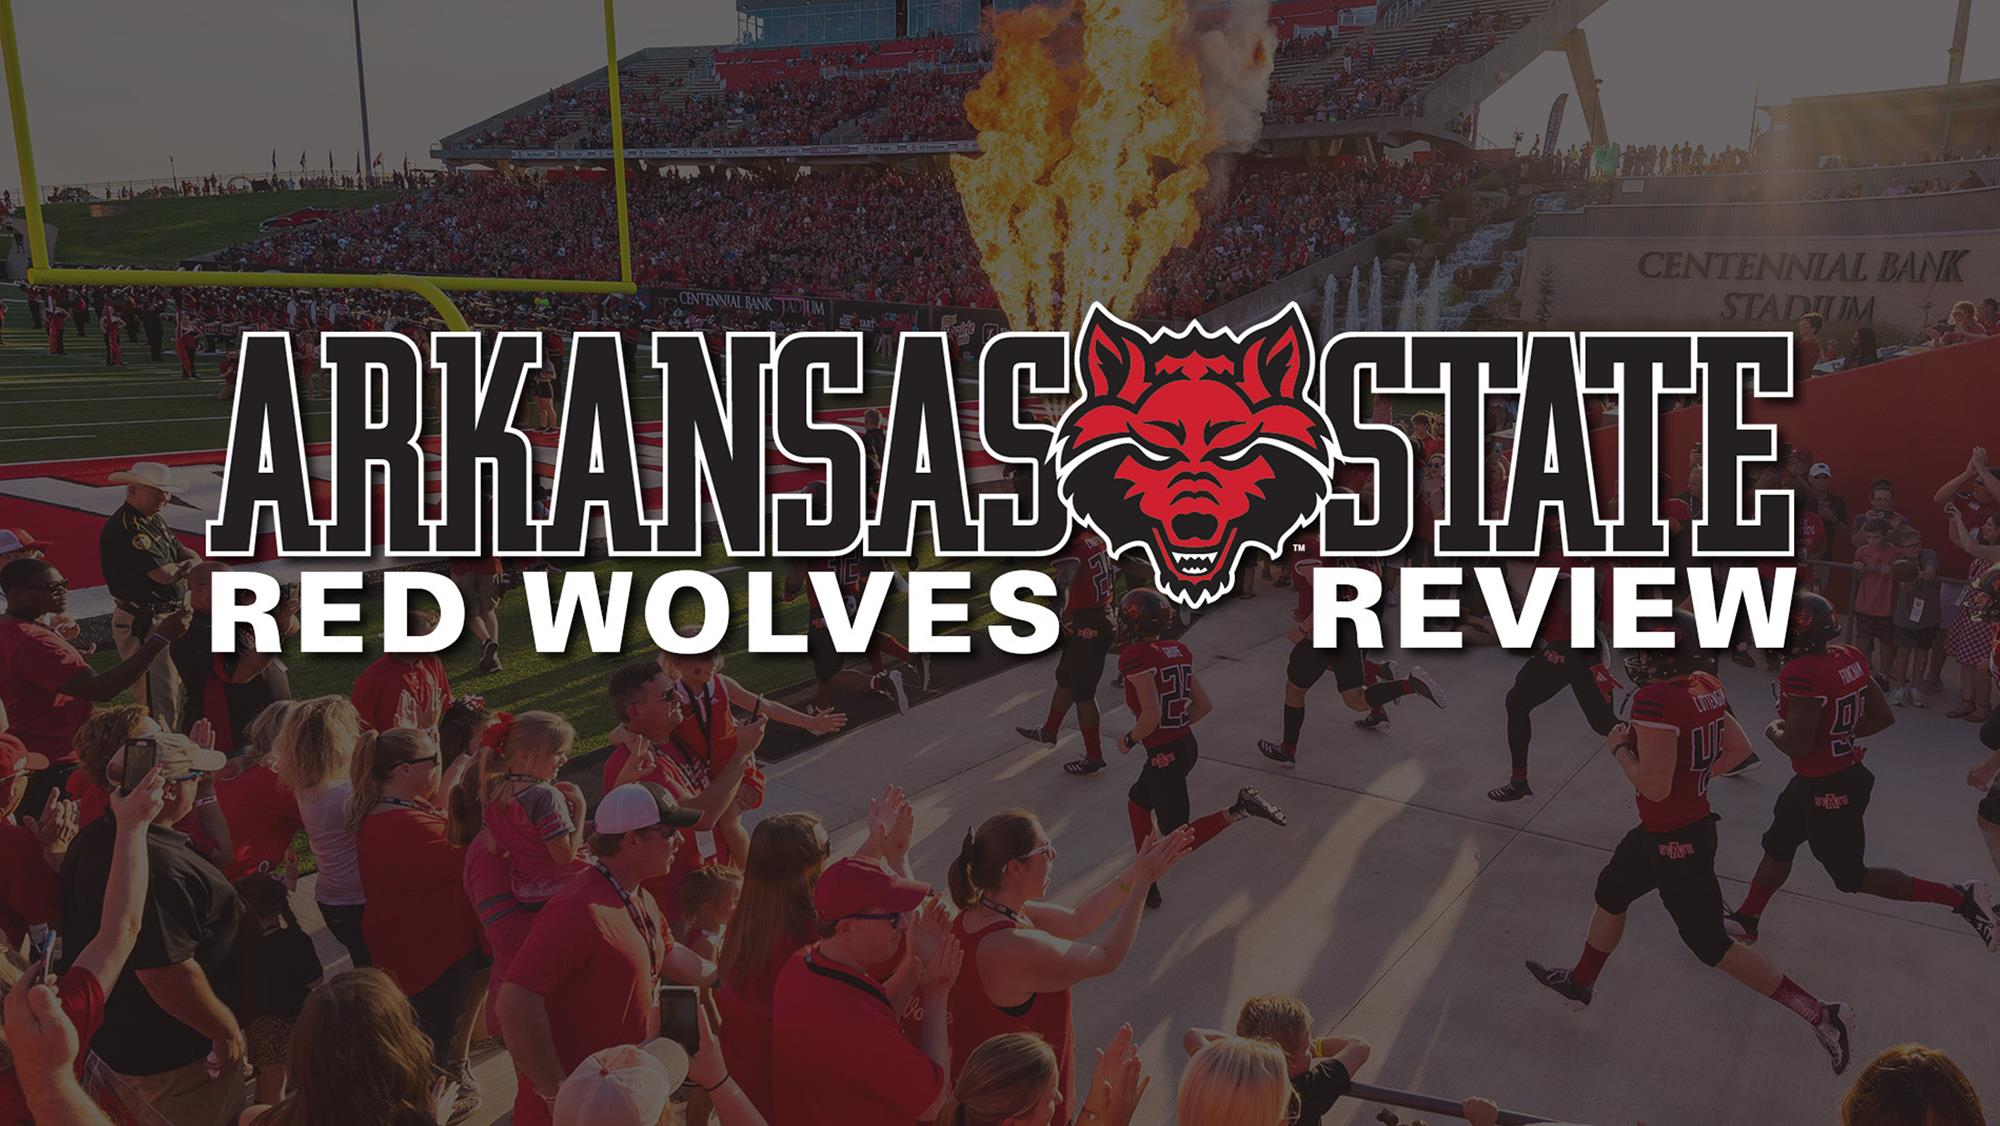 Football - Arkansas State University In Arkansas State University Holiday Schedule